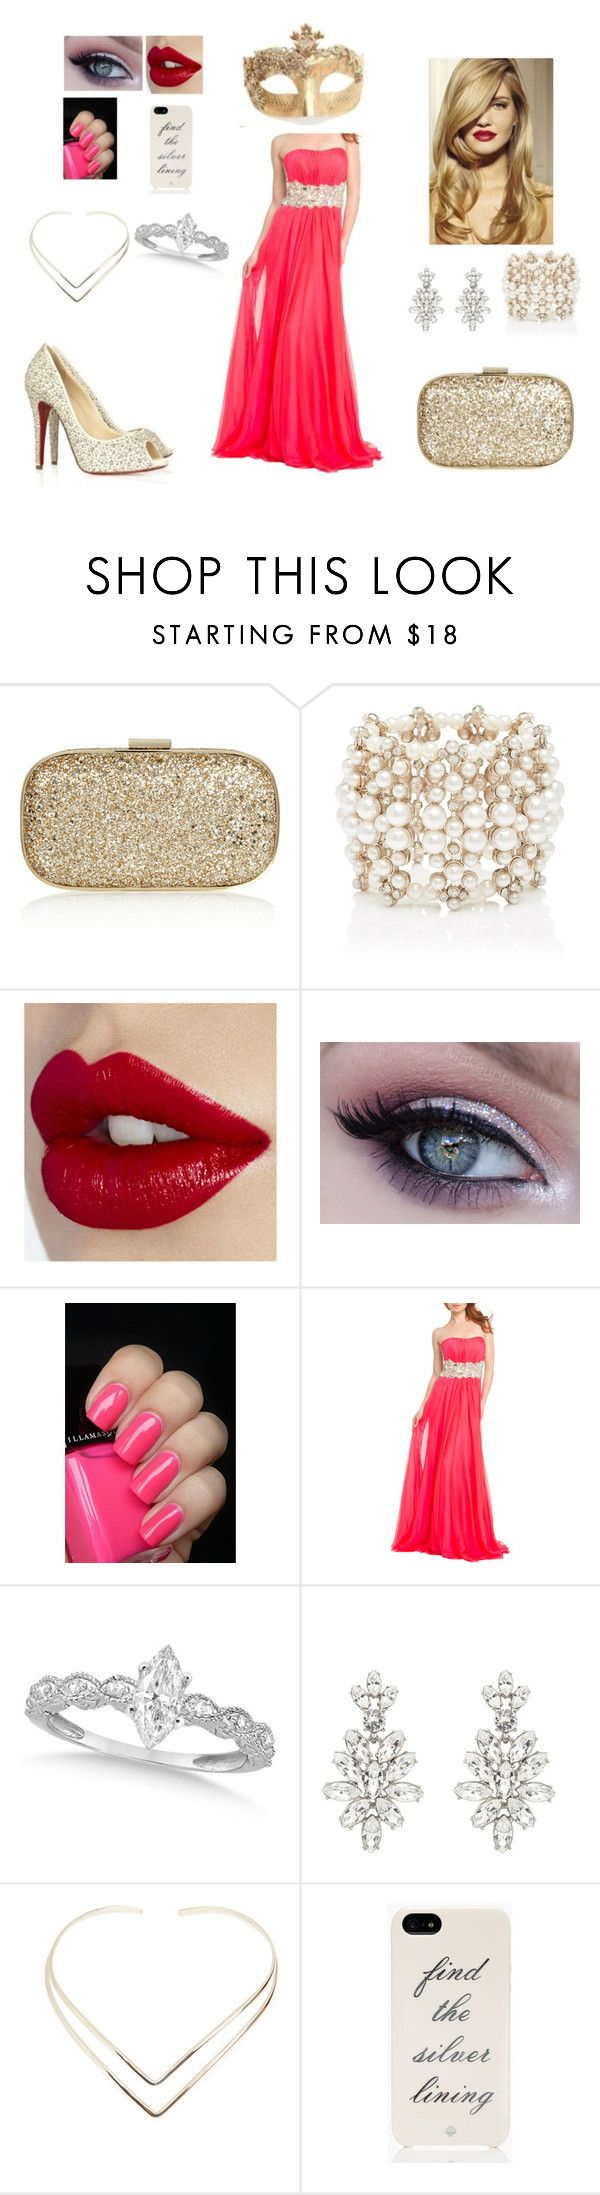 """Vestido da Ashiley para o baile.."" by jade-vieira ❤ liked on Polyvore featuring beauty, Anya Hindmarch, Forever New, La Femme, Allurez, Oscar de la Renta, Natalie B and Kate Spade"